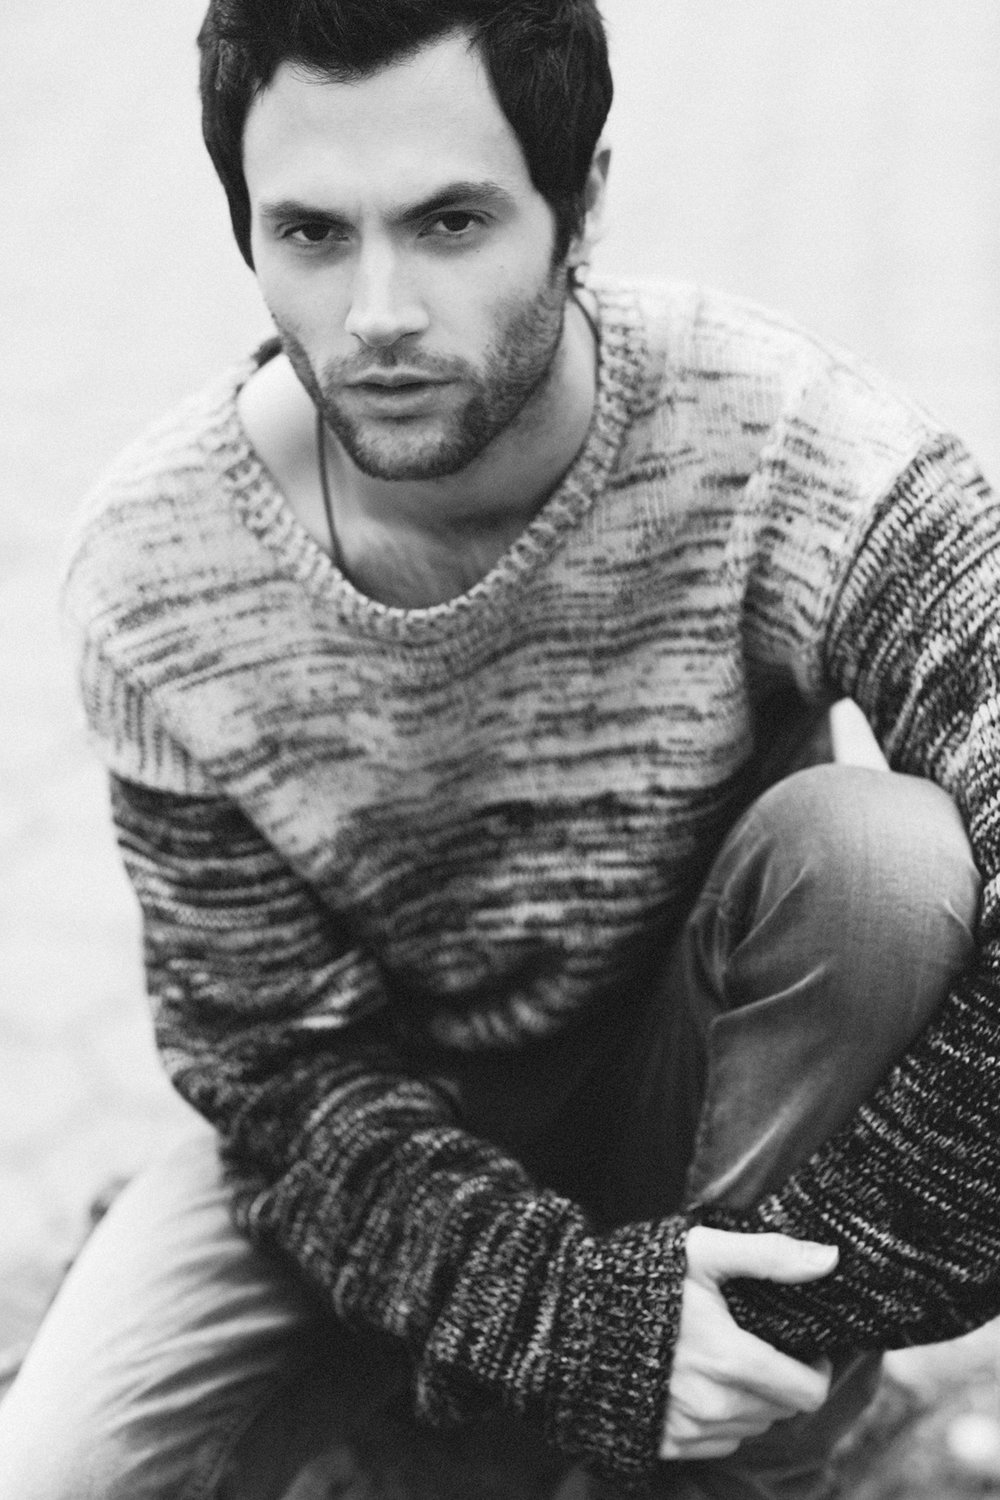 JUSTIN_HOLLAR-nylon-penn_badgley_92A5856.jpg